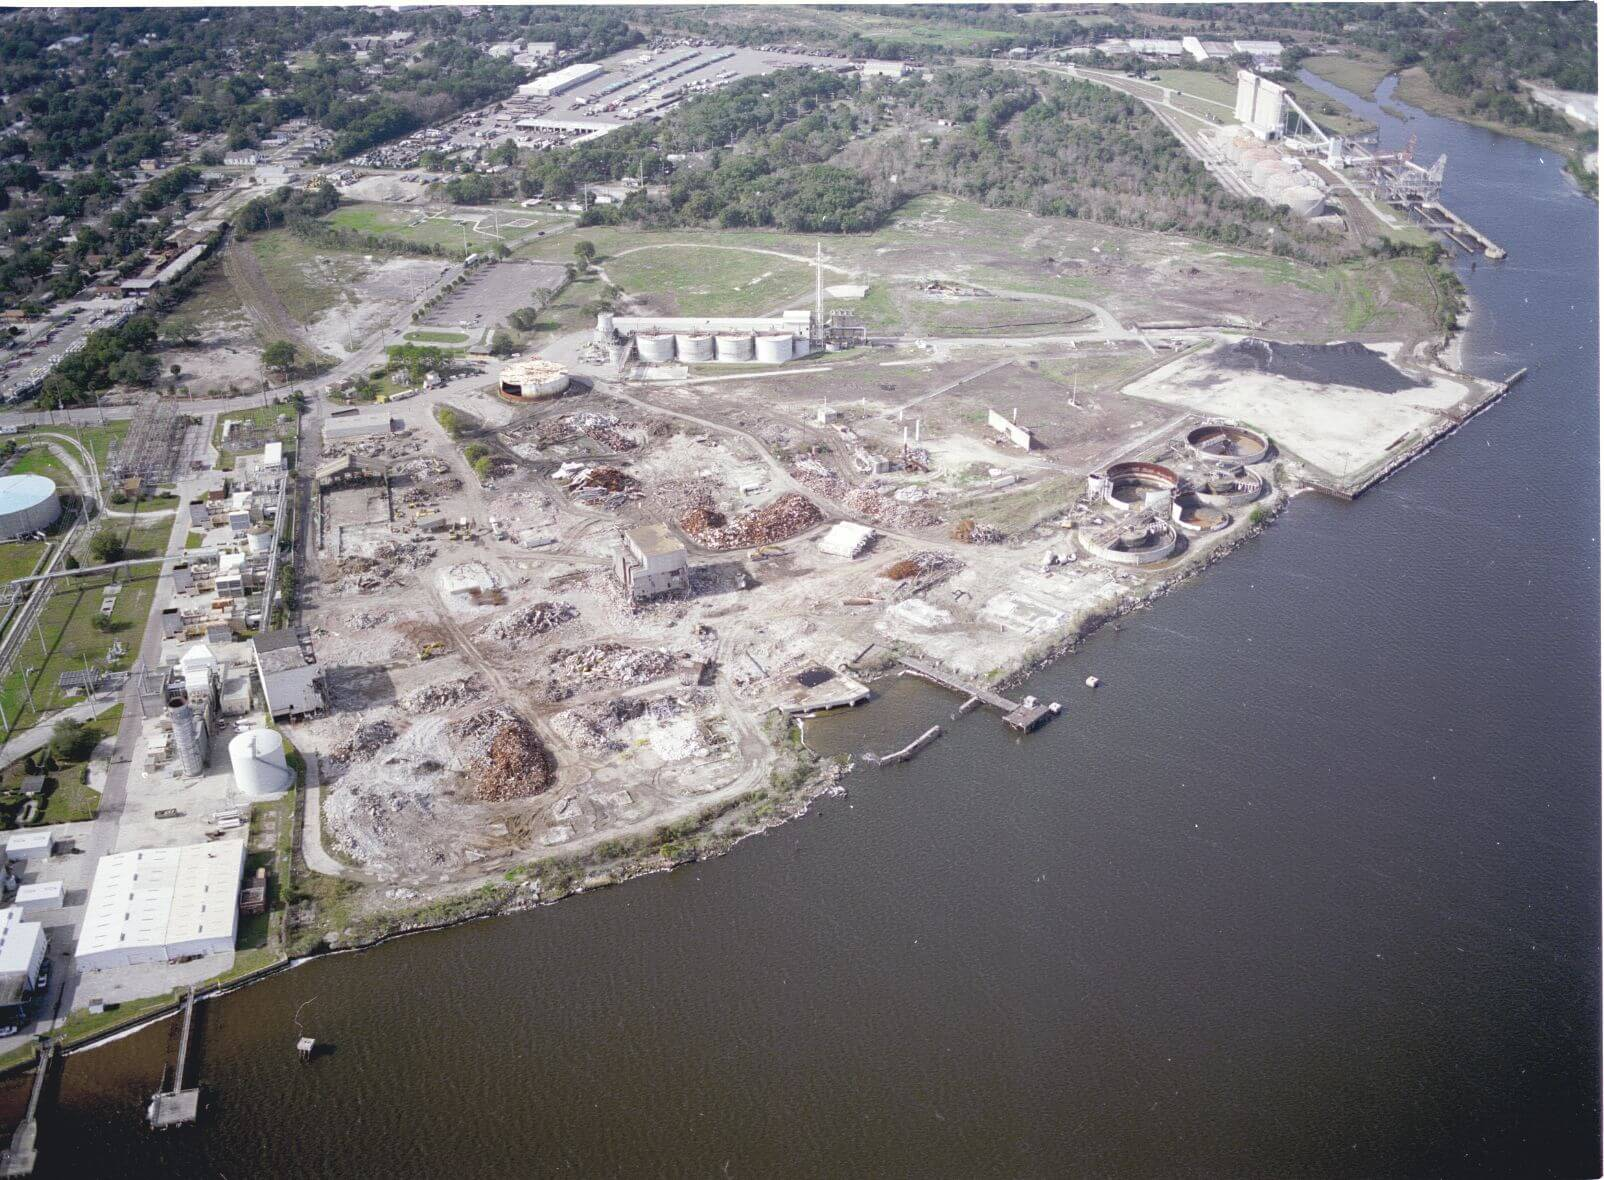 "<h2>Case Study #1 &#8211; Whole Take of Industrial Property with Deep Water Port Access</h2> <p>A municipal port authority with the power of eminent domain initiated ""slow-take"" proceedings to acquire an 60+ acre industrial property with deep water access for the purpose of construction a port terminal to be owned by the port authority and leased to a private import company. The owner of the property purchased the waterfront property with the intent to redevelop the former plant and construct a bulk terminal. The property had many unique characteristics including an abandoned railroad line, industrial buildings and a small office building. Additionally, the property contained a landfill used by the former industrial owner and was encumbered by some contamination. The owner purchased the property for $8 million and assumed all responsibility for the environmental clean-up.</p> <p>In advance of filing the condemnation suit, the port authority offered the owner $14 million to purchase the property. However, the port required the owner to remain liable for the environmental clean-up. The owner refused the port&#8217;s offer and suit was filed. Following a two-week jury trial in which numerous experts testified for both sides concerning the valuation of the industrial fixtures on the site, the cost to cure the environmental issues, the likelihood of the owner obtaining the necessary permits to construct port infrastructure and connect the rail line, as well as the overall value of the property, the jury returned a verdict awarding $76 million in just compensation for the acquisition of the property. Because the port authority used the &#8220;slow-take&#8221; eminent domain power, it was afforded the opportunity to decide whether it wanted to move forward with the acquisition and pay the amount the jury determined to be just compensation or whether it would abandon the condemnation. The port authority decided to abandon the taking remaining liable for the owners&#8217; attorneys fees and costs determined by the court to be in excess of $10 million.</p>"